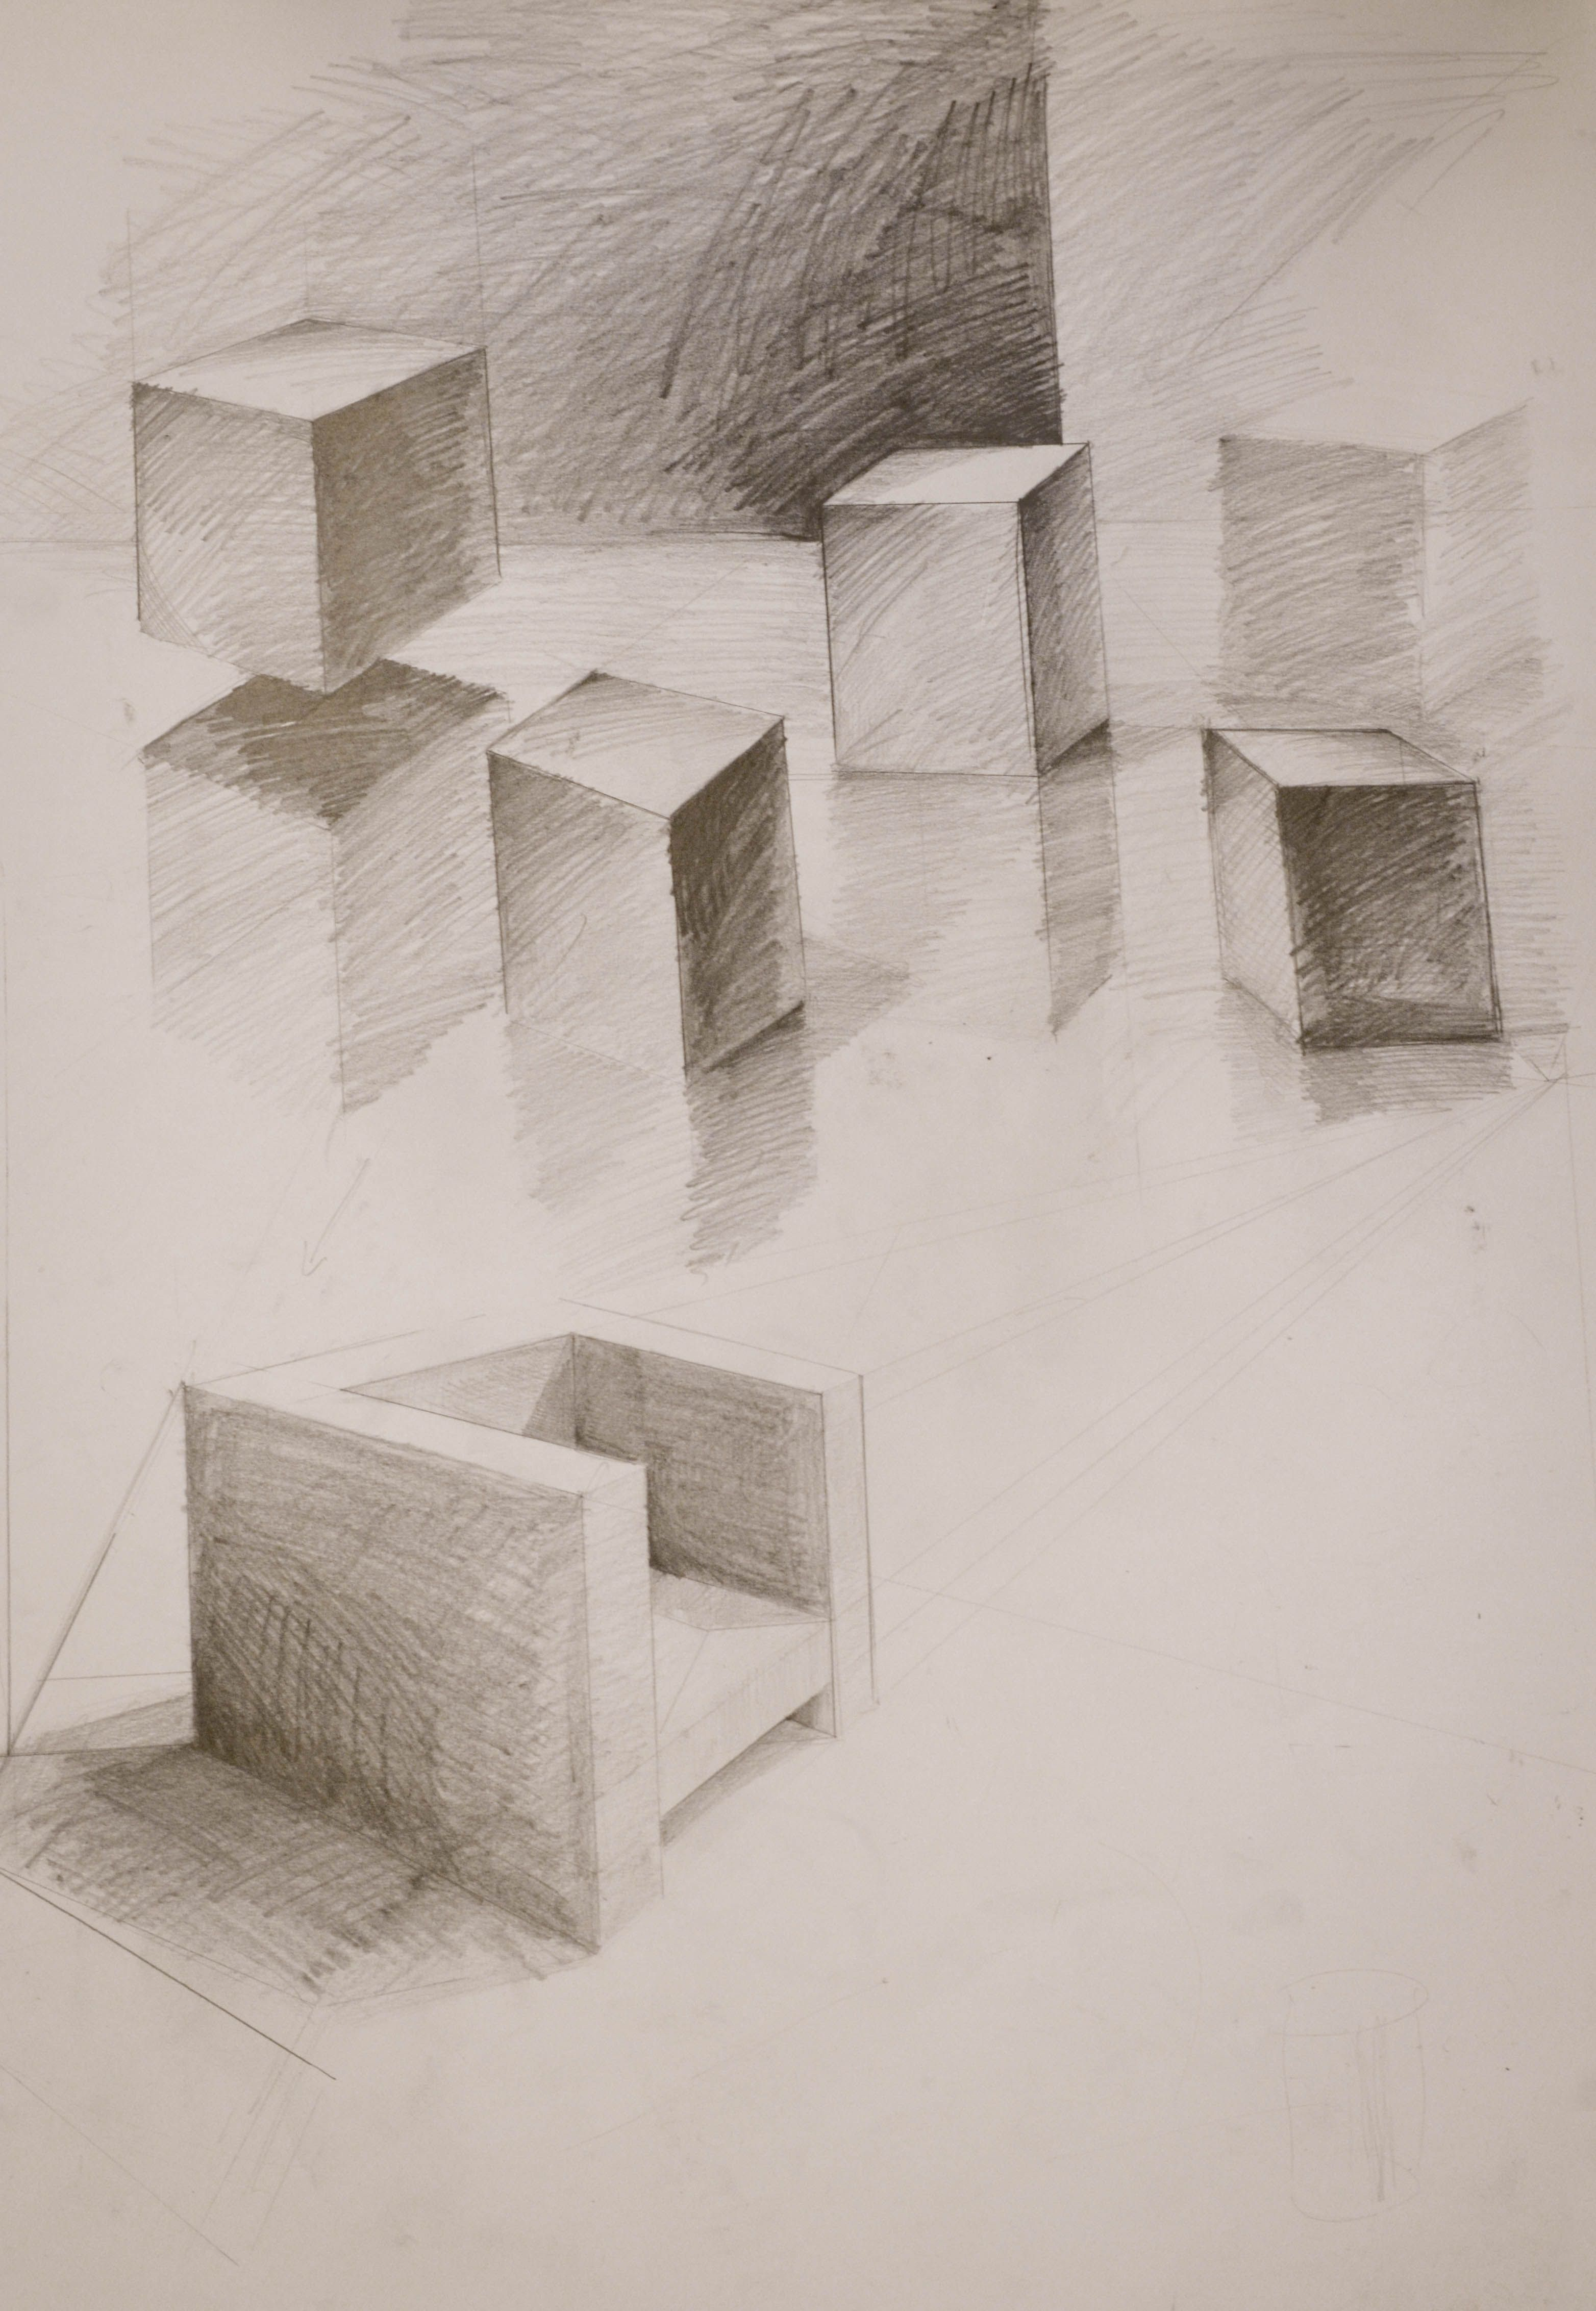 Martyna Kowalska School of Form perspective and shading exercises